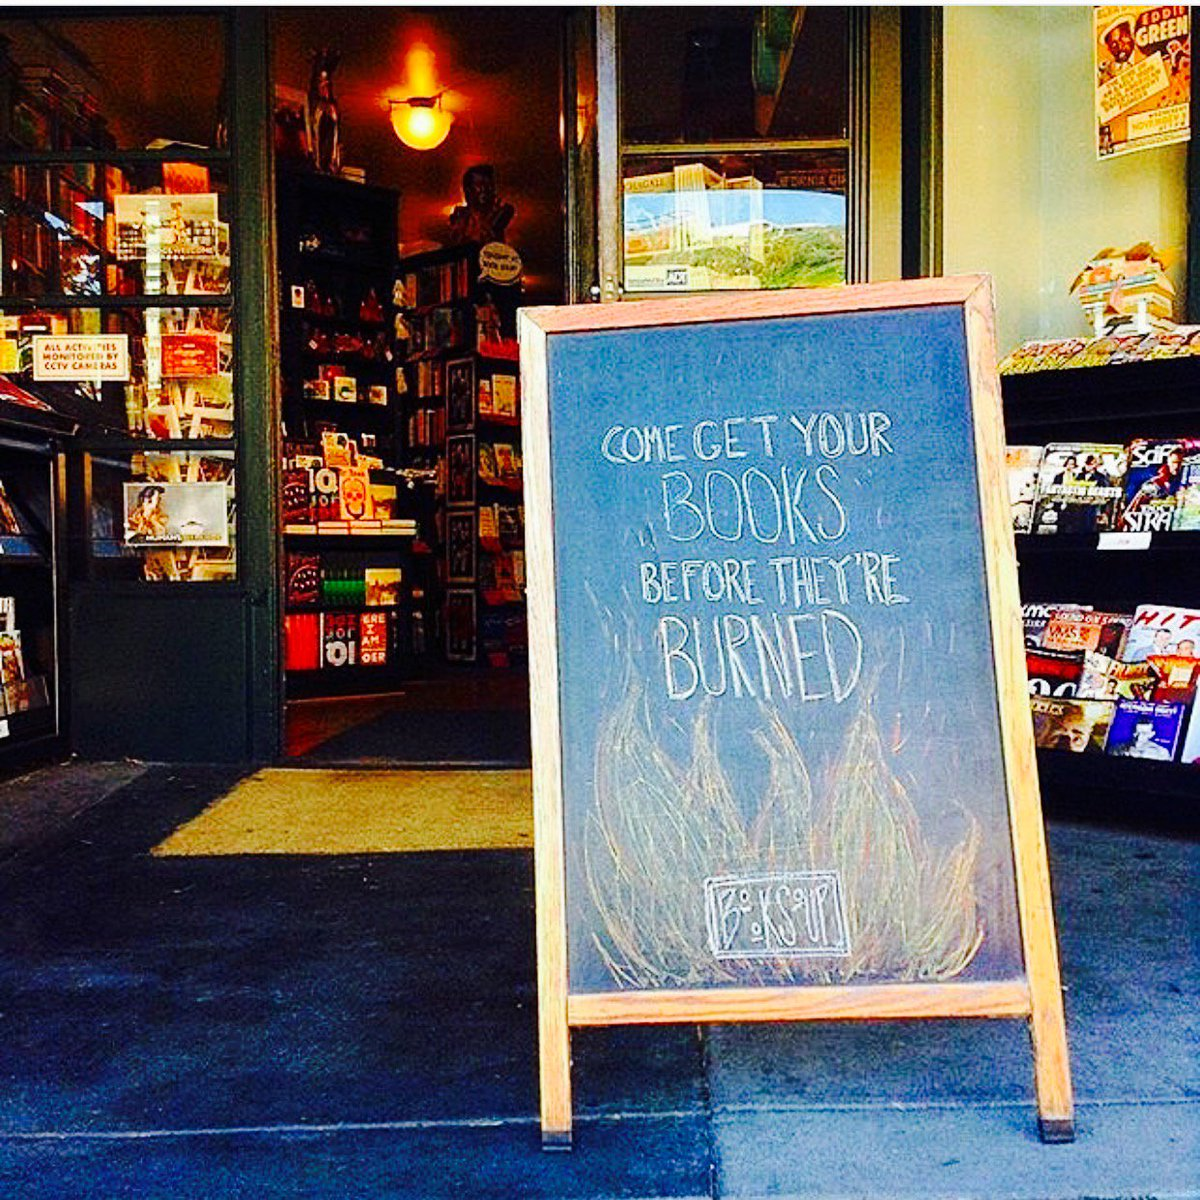 A neighborhood favorite @BookSoup! #wehowednesday (photo from @westhollywood)pic.twitter.com/9ak9gdV6Hs